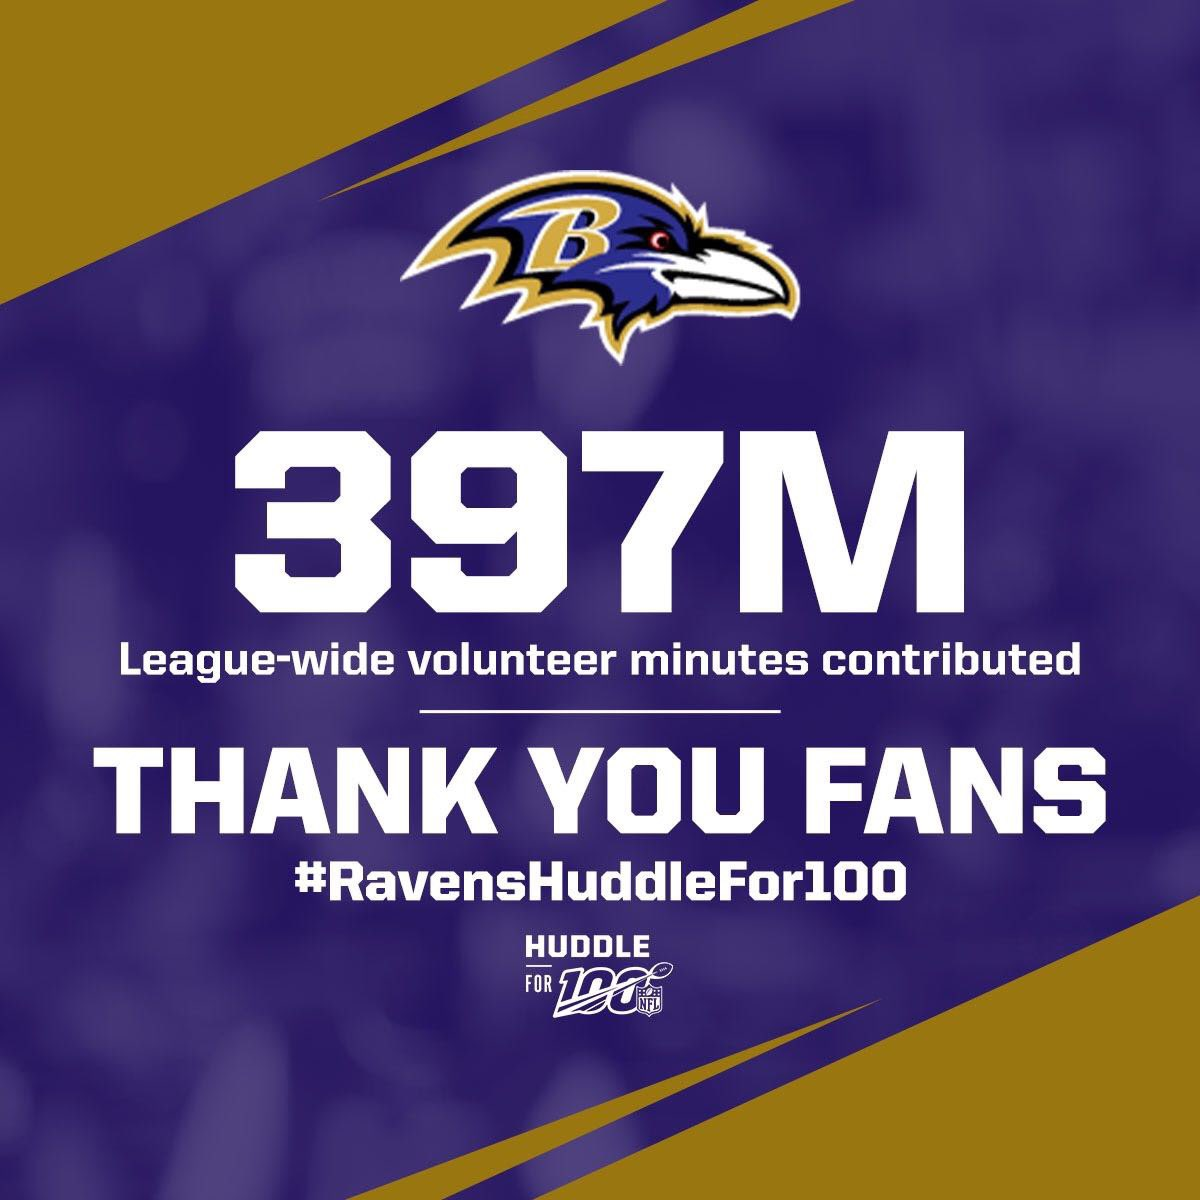 There's nothing more important than our community. 💜 Together the #RavensFlock and the @NFL family logged nearly 400 MILLION minutes of community service this season‼️ #RavensHuddlefor100